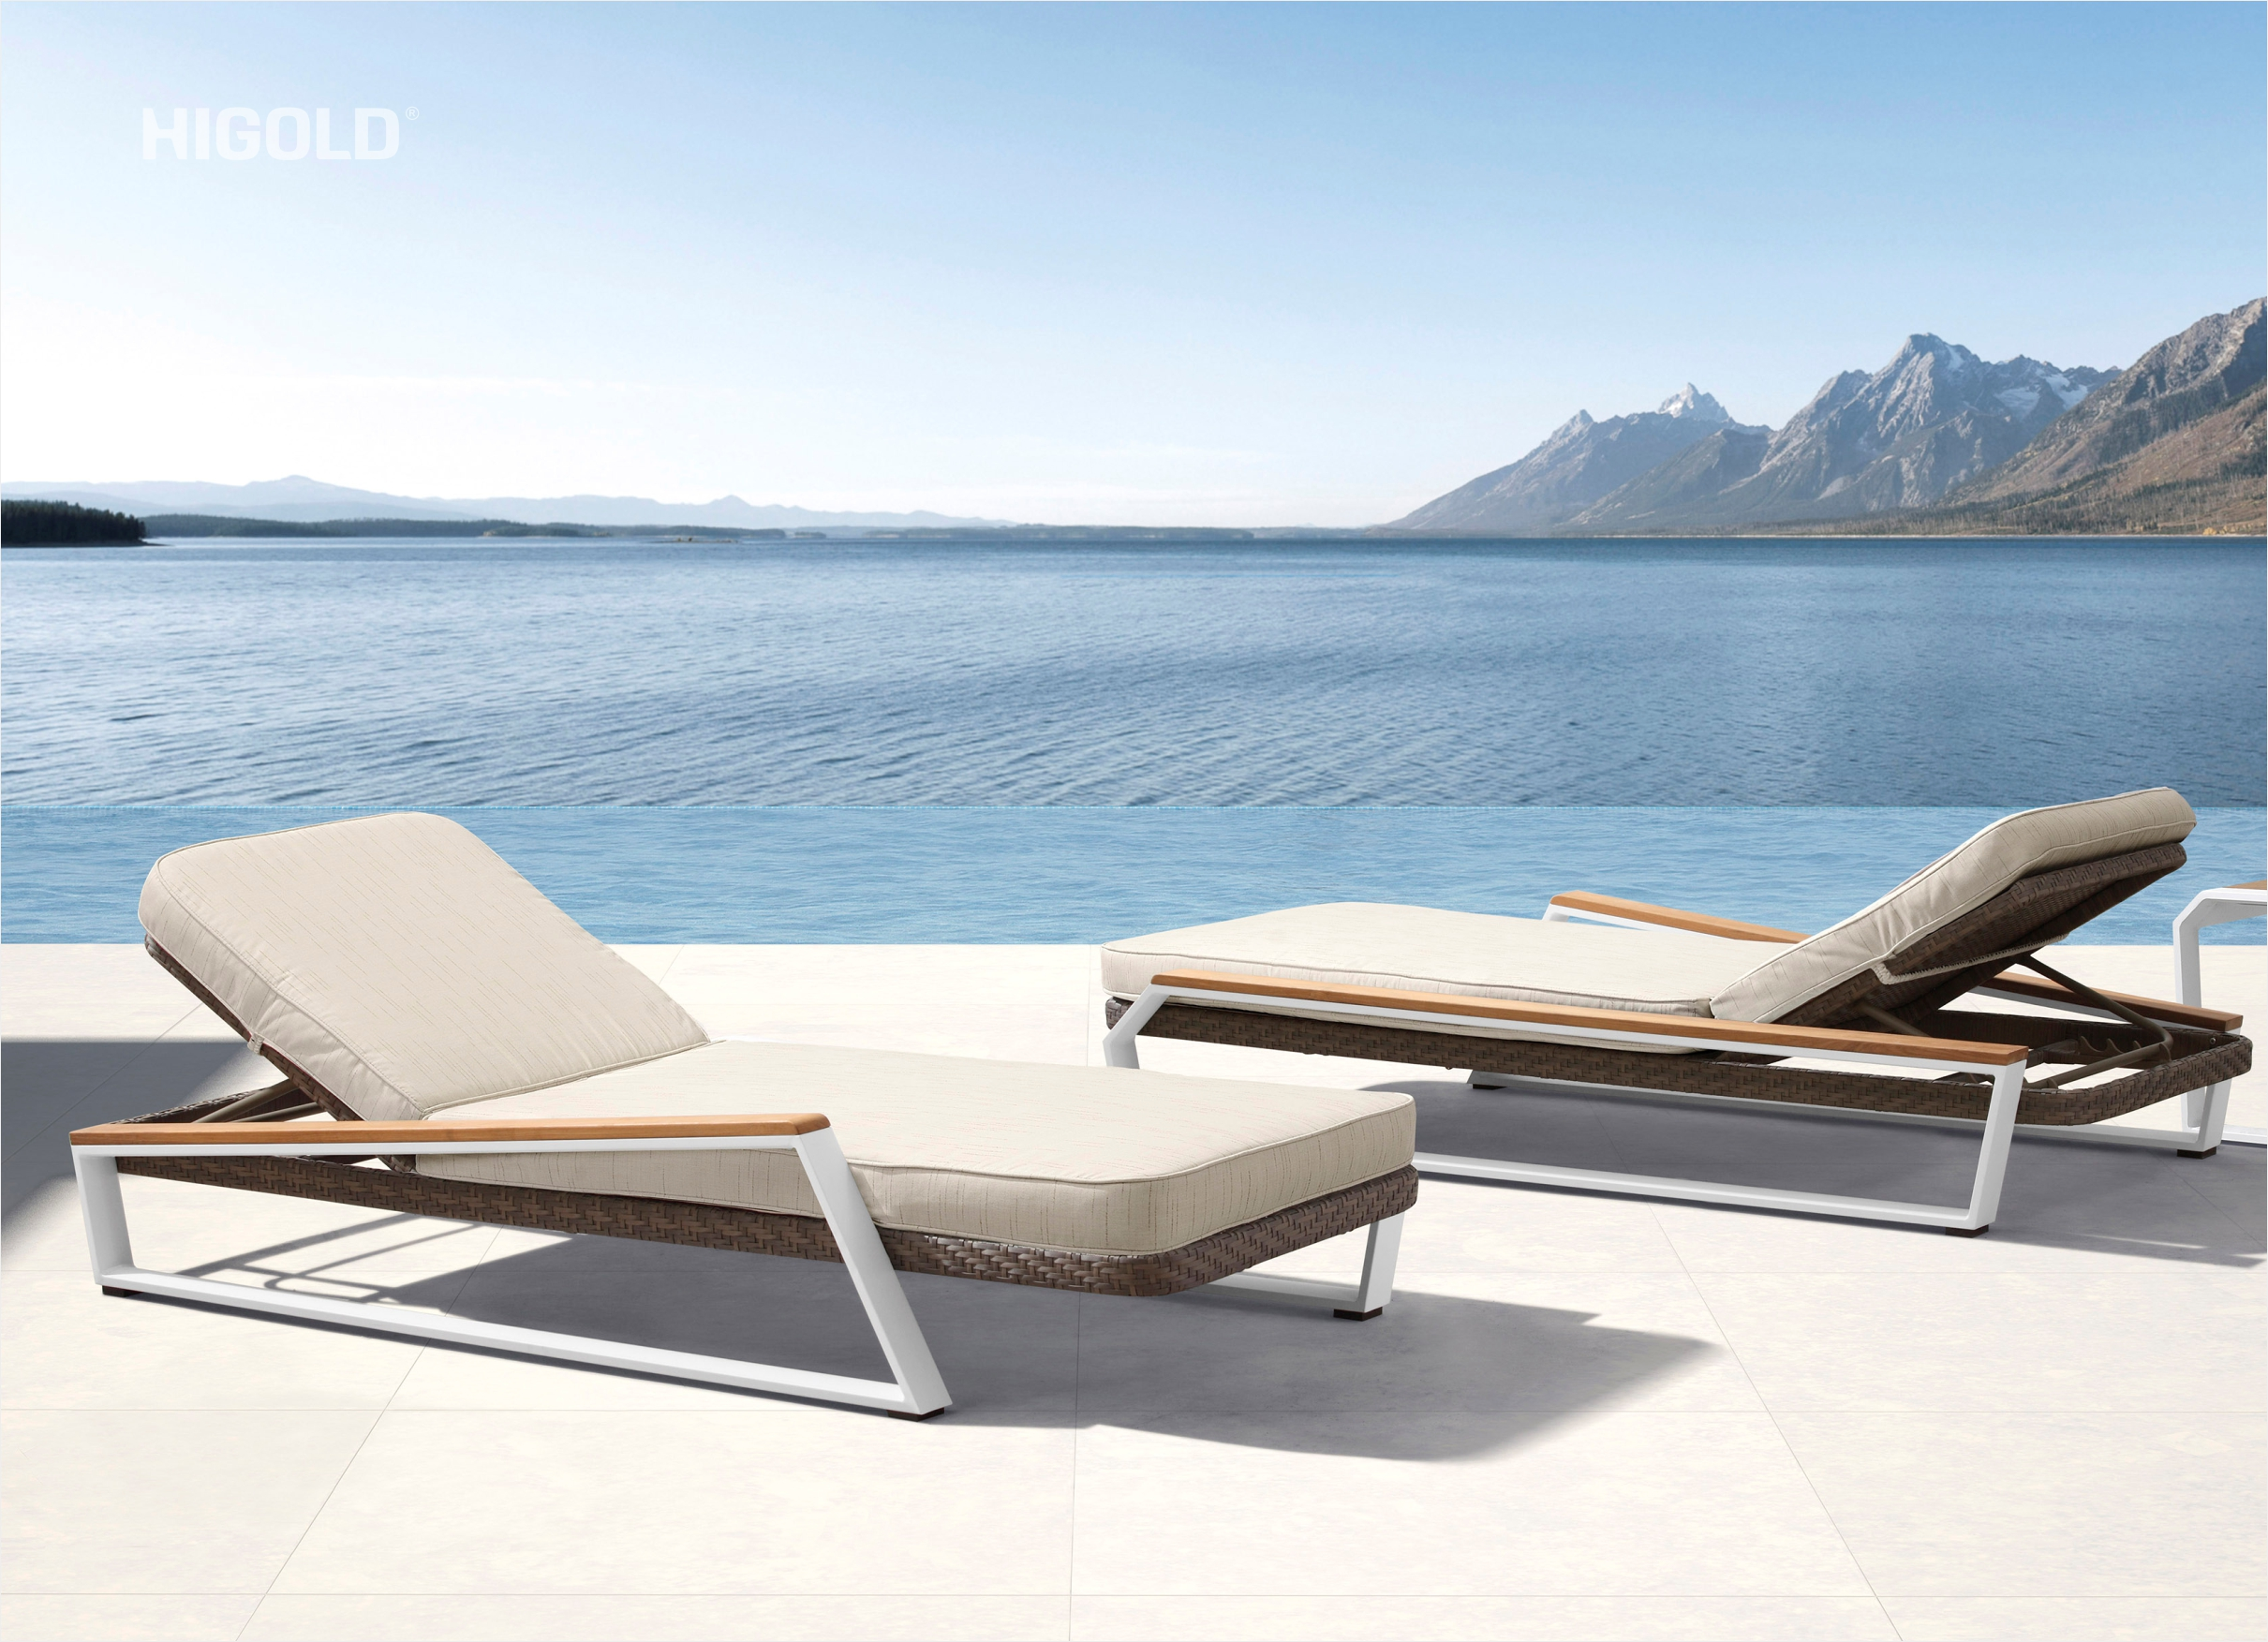 Teakman Chaise Lounger 201851